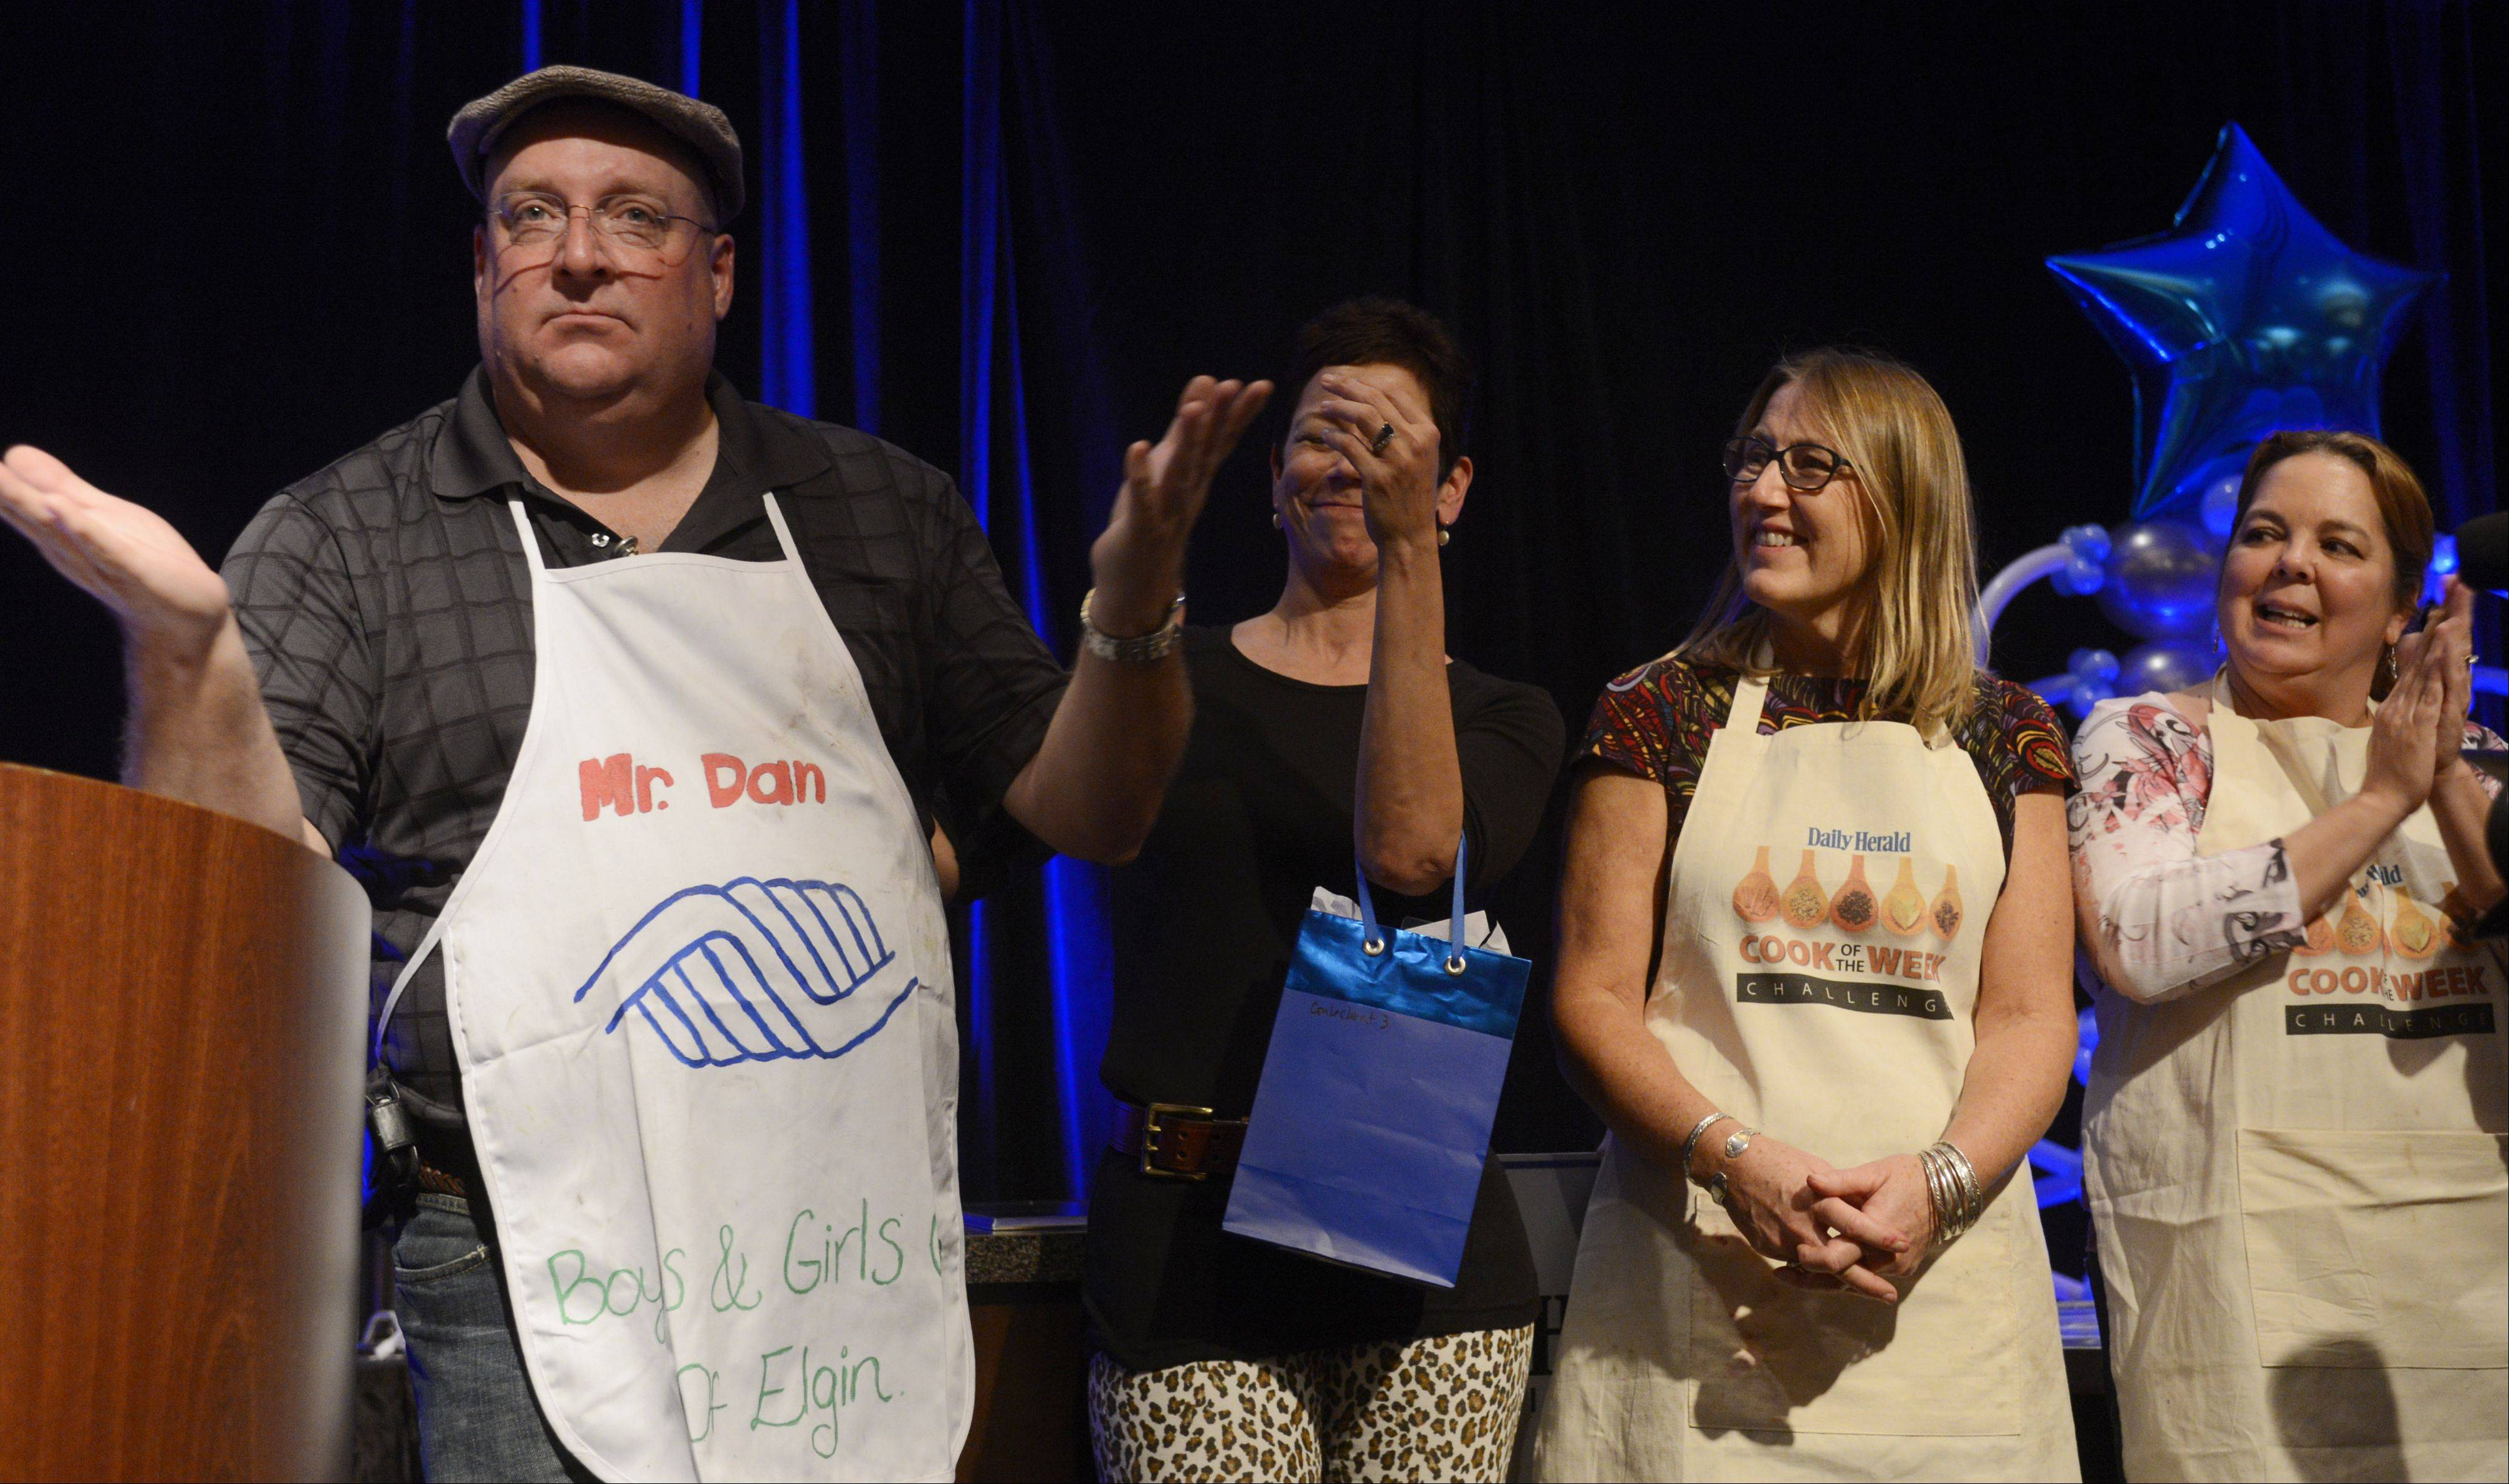 Dan Rich of Elgin is the winner of the Daily Herald Cook of the Week Cookoff finals, held at the Hyatt Regency Schaumburg Wednesday.